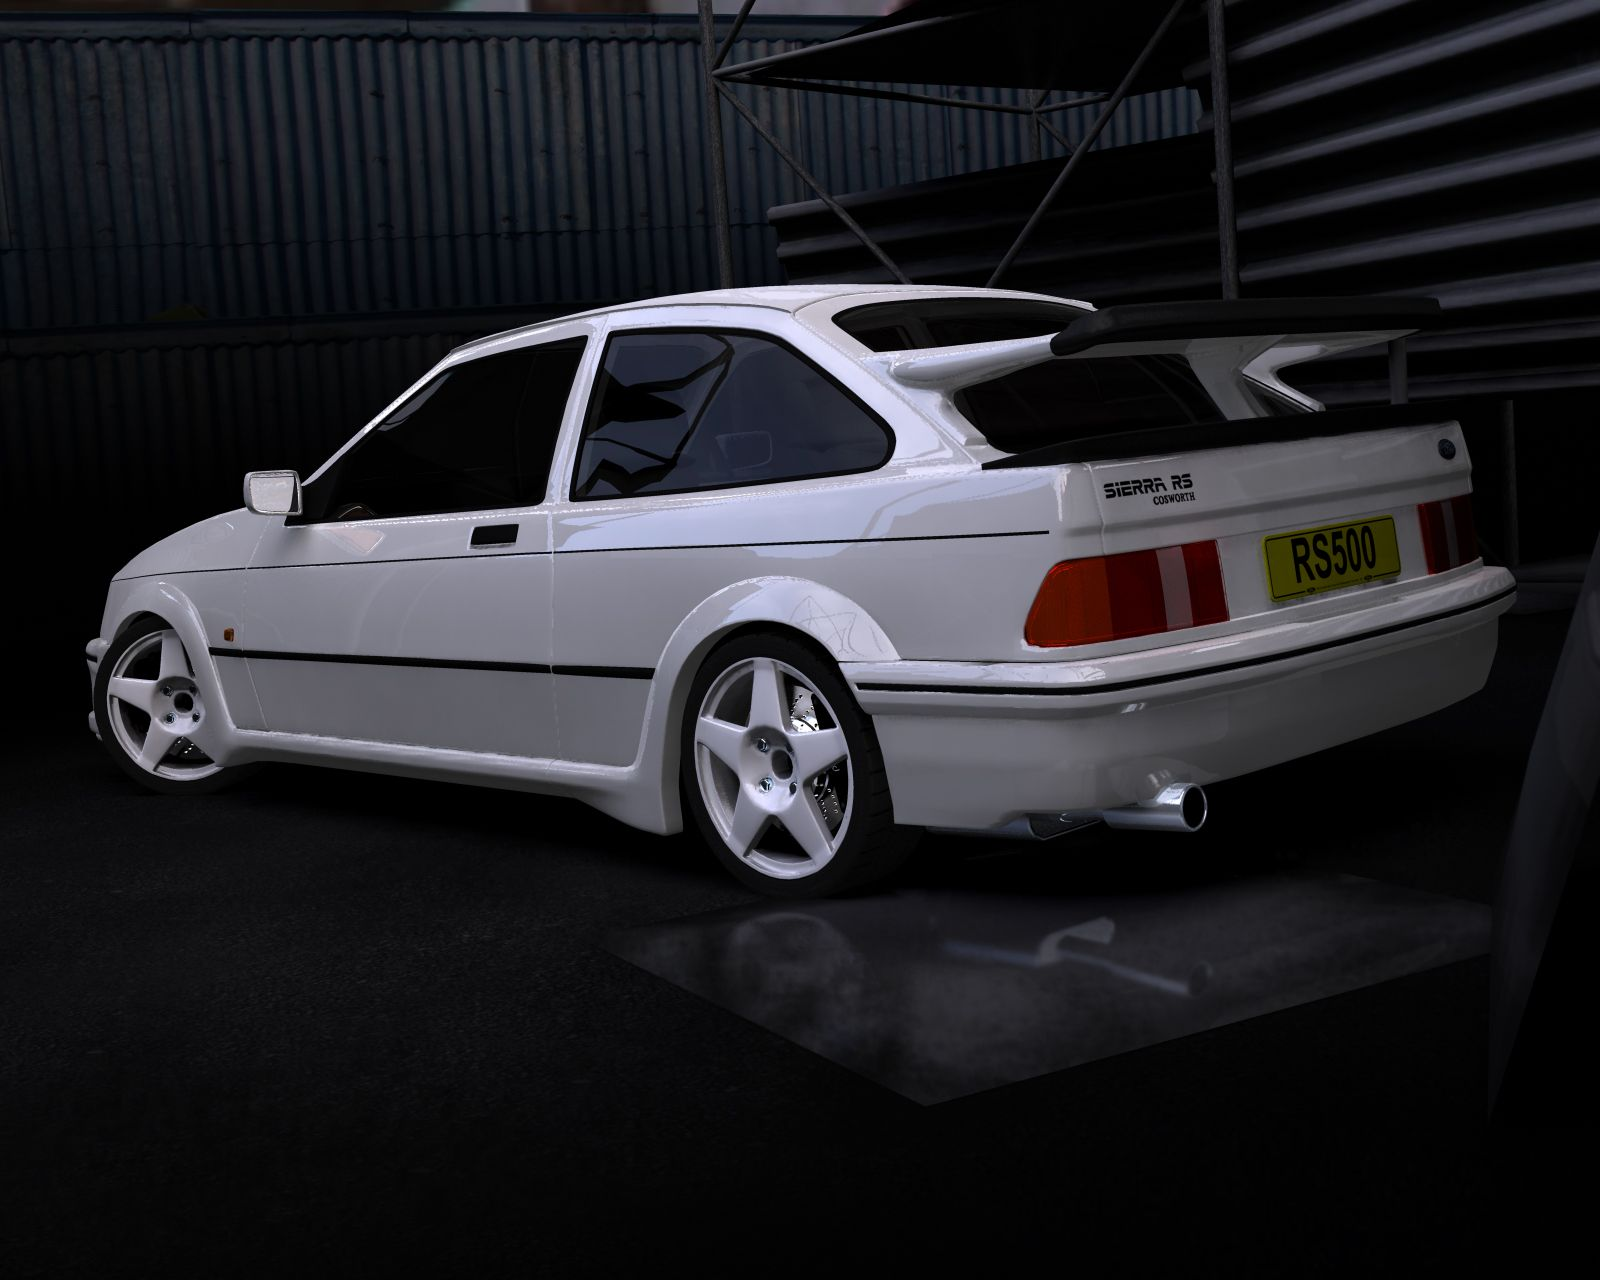 Ford Sierra Cosworth Rs500 The Shiznitt Back In Da Day Ford